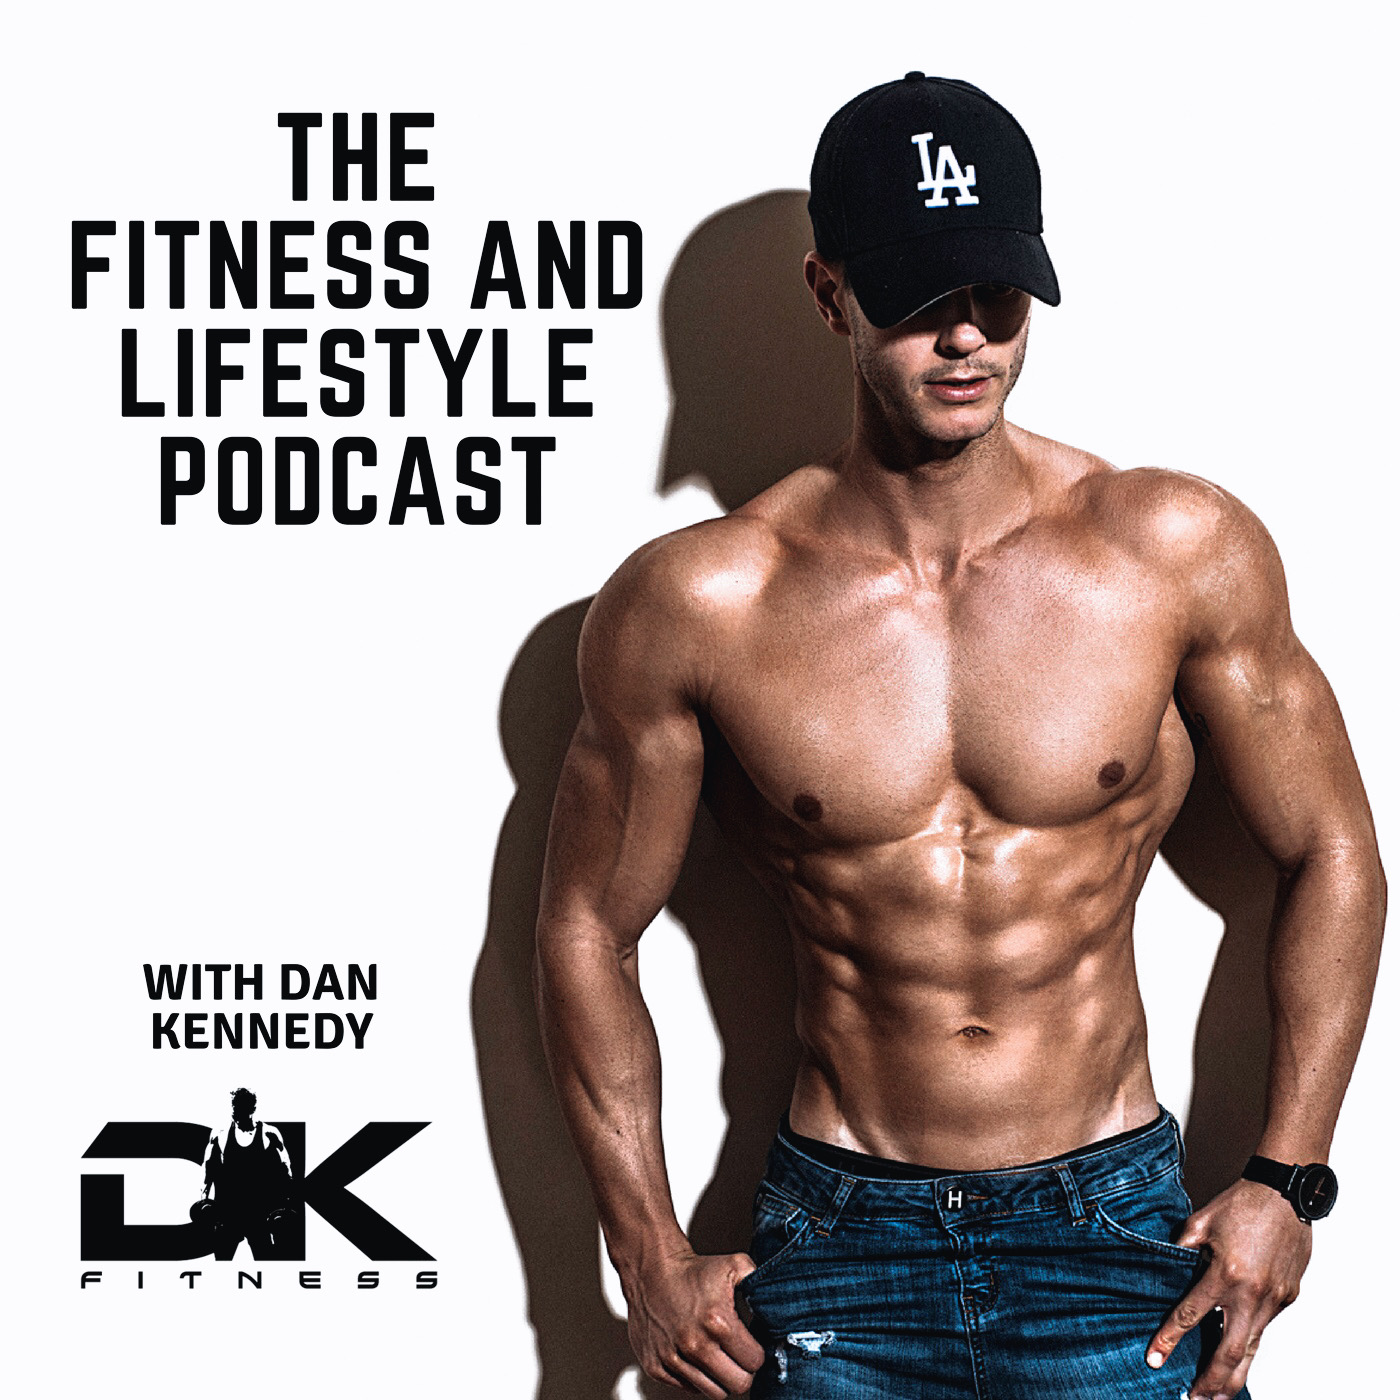 The Fitness And Lifestyle Podcast